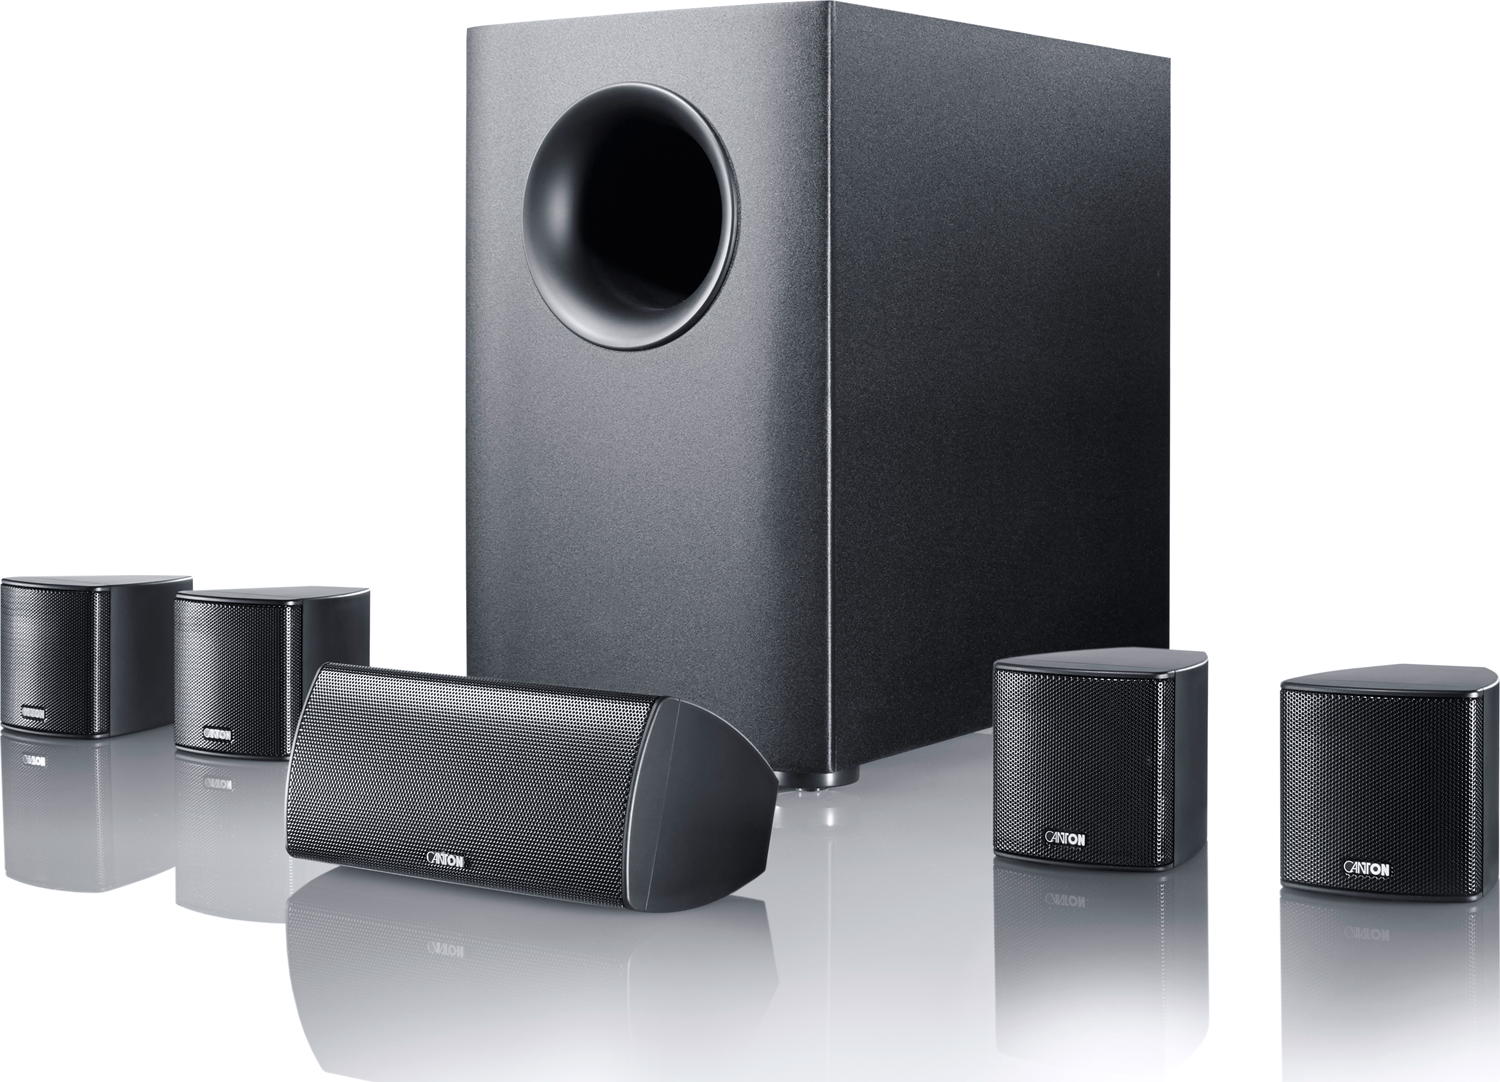 canton movie 95 5 1 speaker system superior to bose. Black Bedroom Furniture Sets. Home Design Ideas